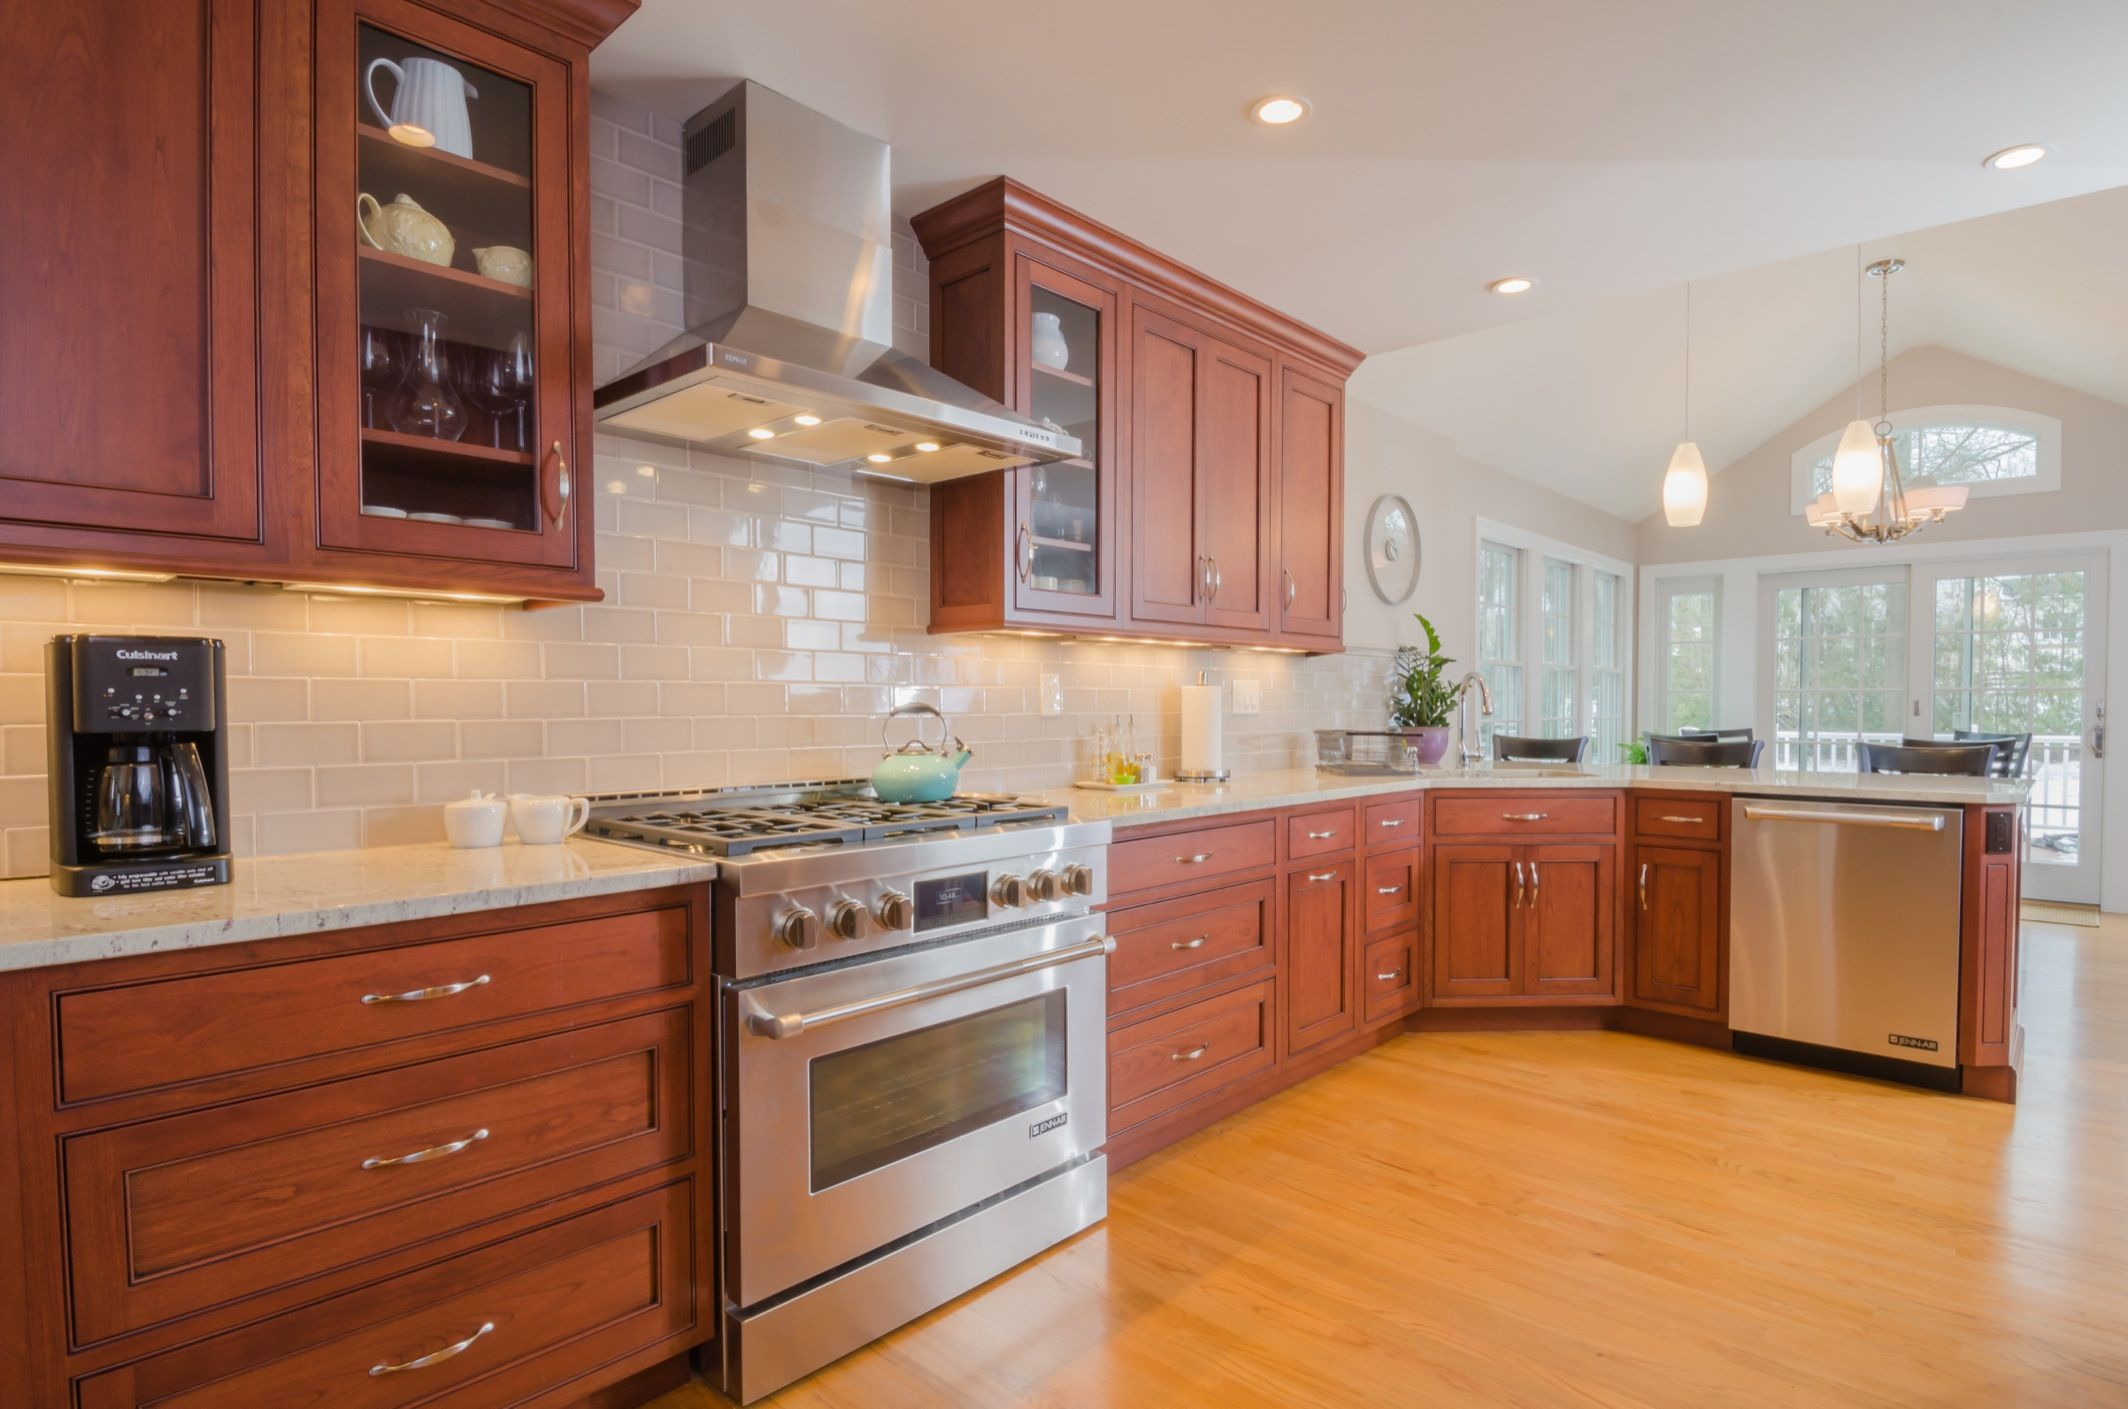 Kitchen Backsplash Tile Cherry Cabinets off white subway tile and simple pattern granite or marble | home